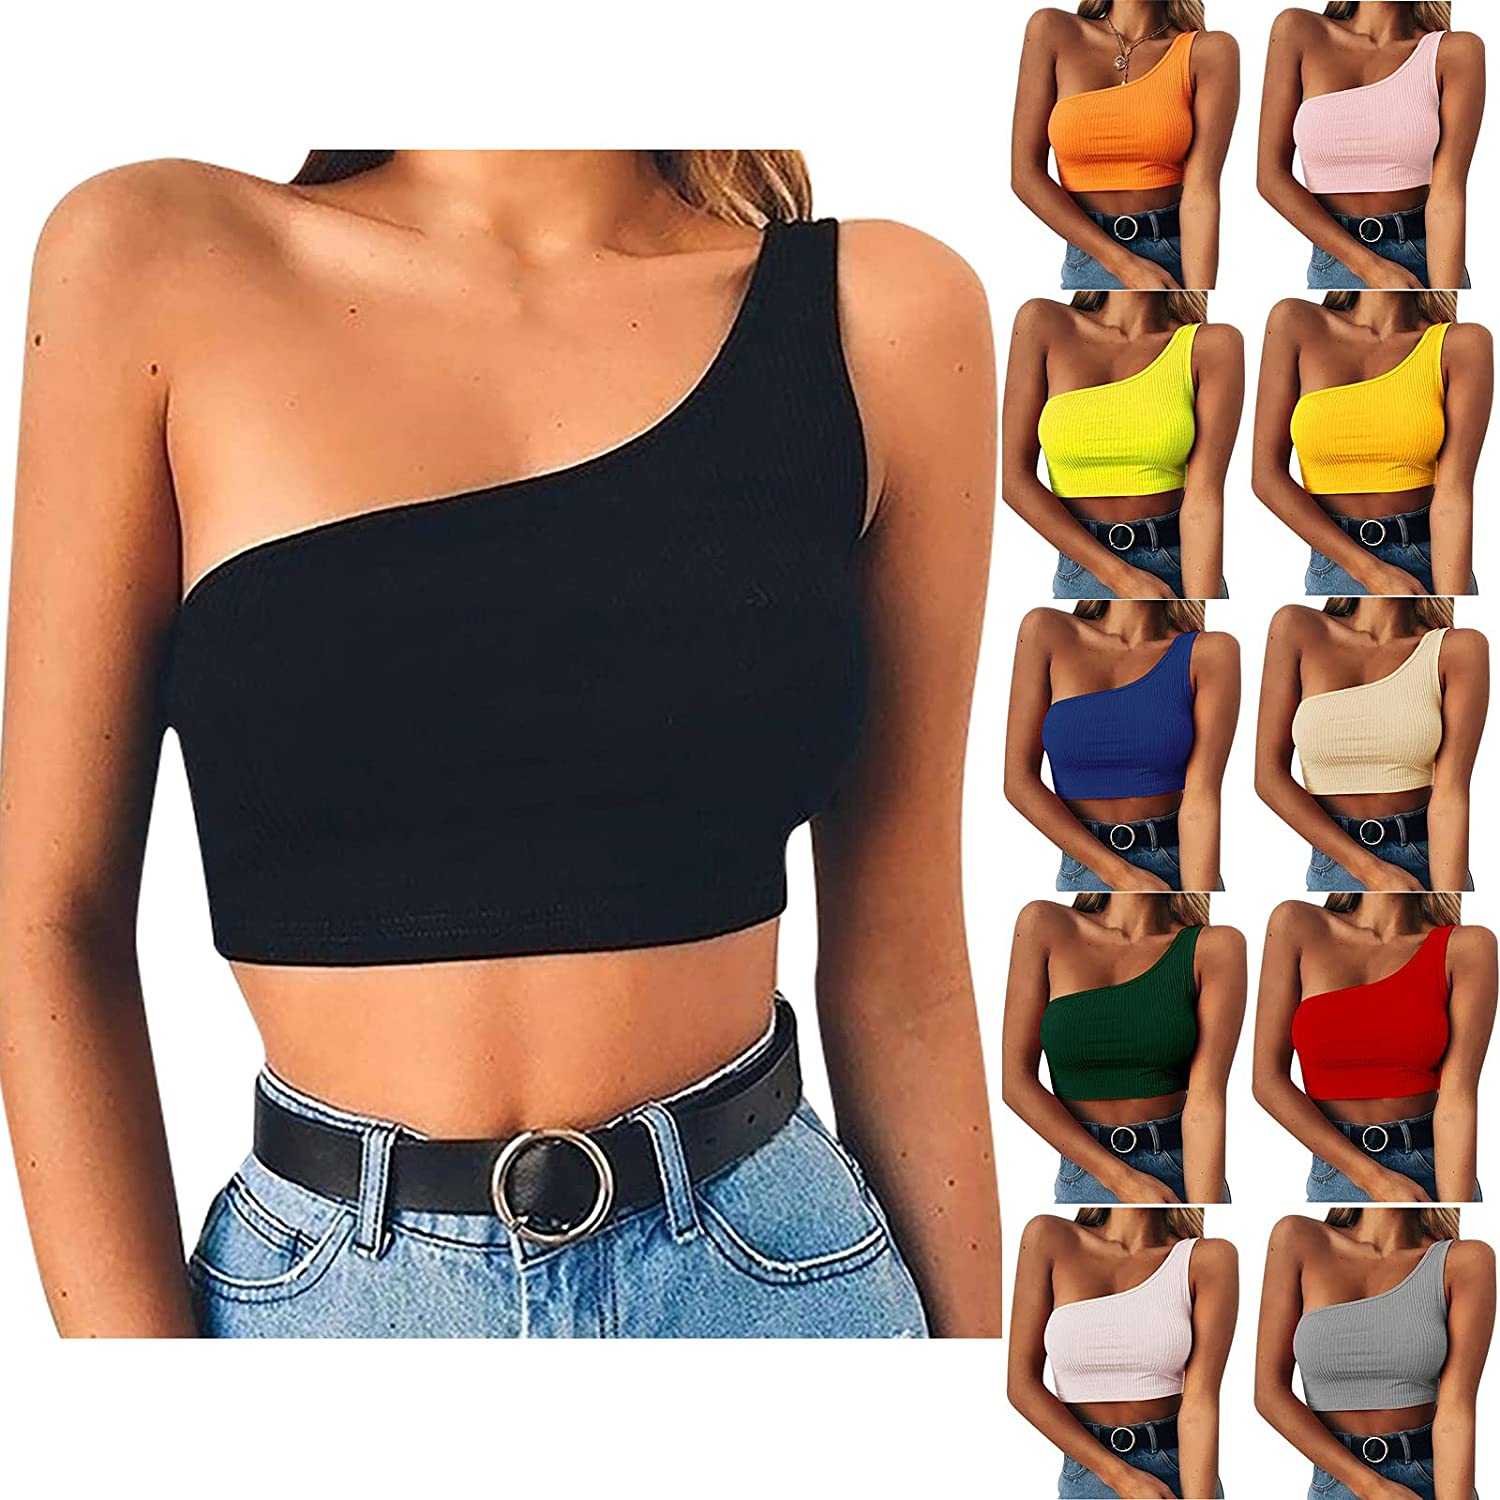 Crop Tops for Women Sexy One Shoulder Shirts Ribbed Knit Solid Color Tees Sleeveless Tunic Summer Tank Tops